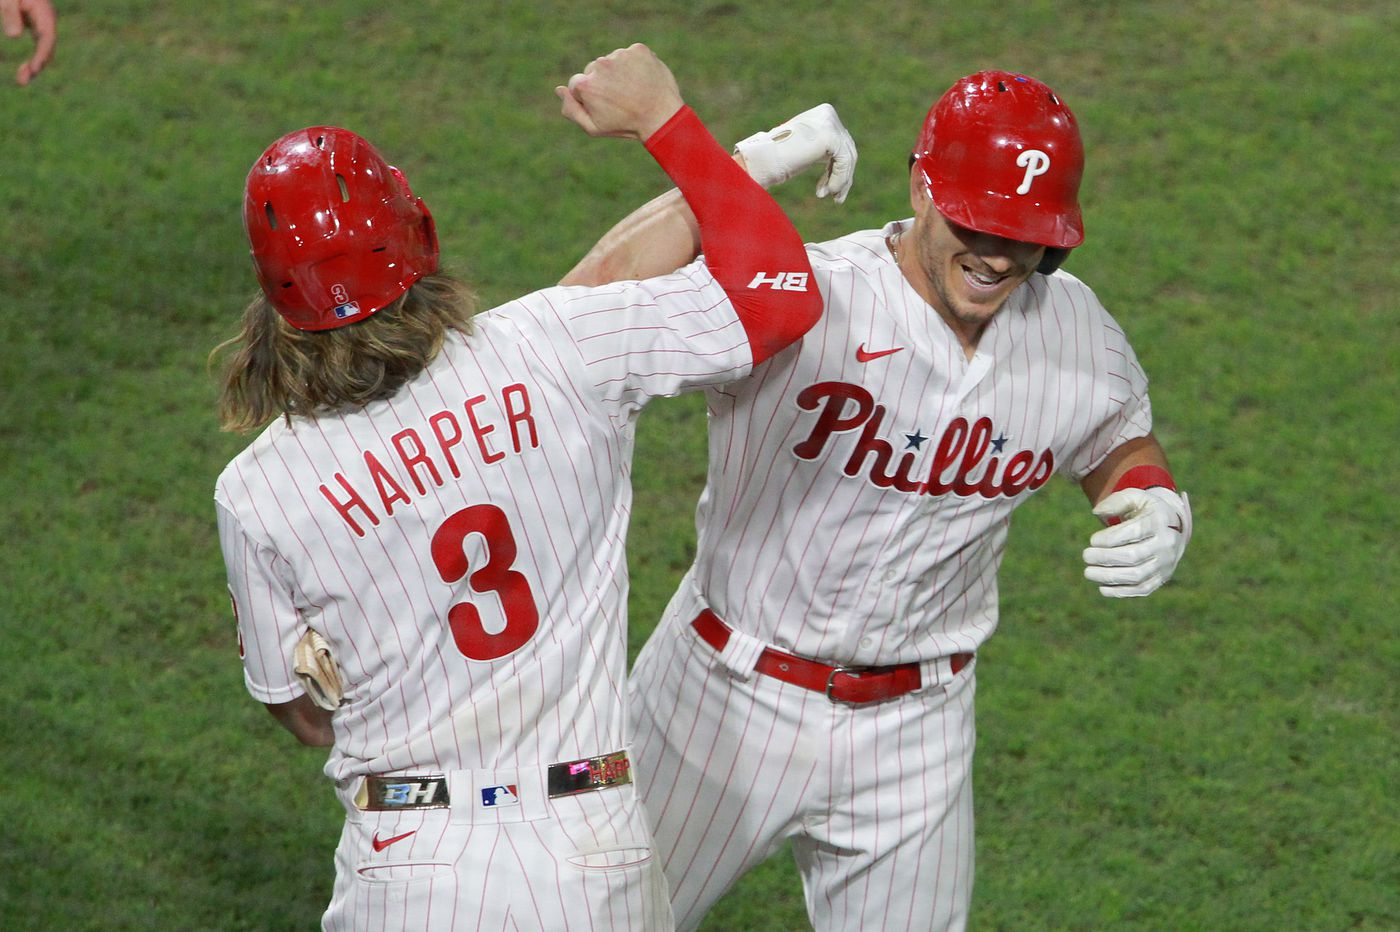 Bryce Harper DHing for Phillies on Monday night, J.T. Realmuto likely to catch Tuesday